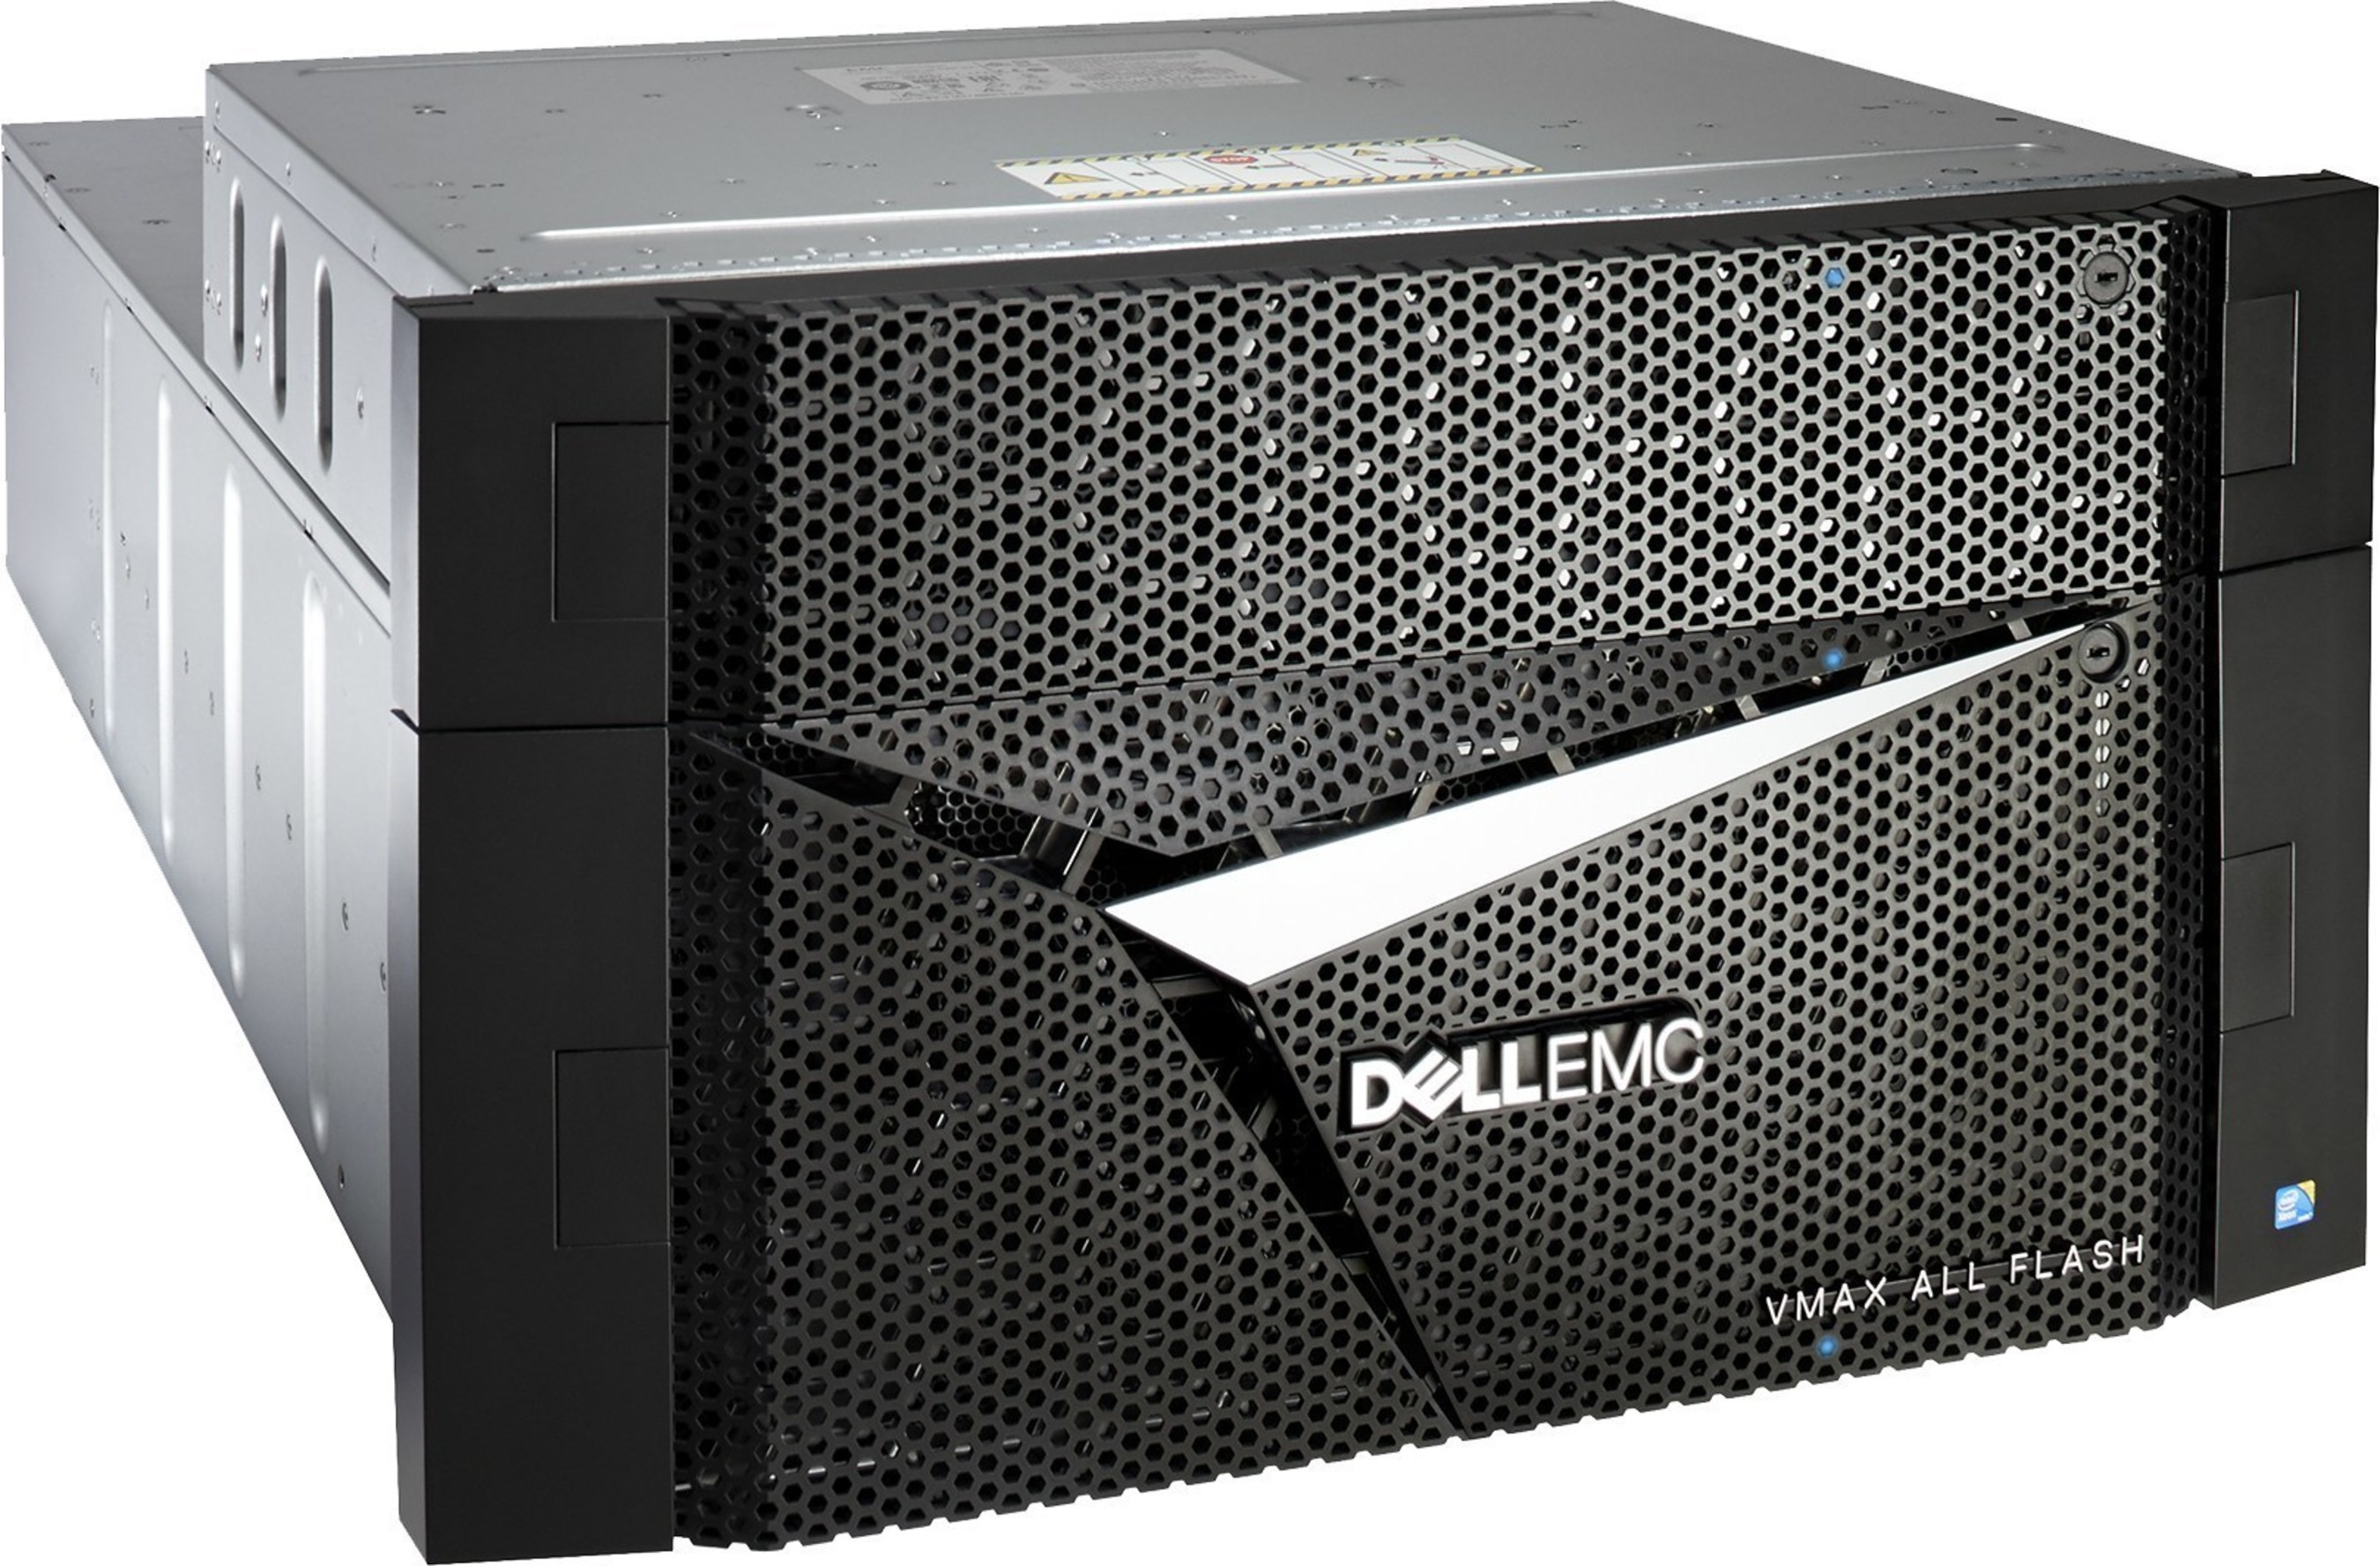 Dell EMC Introduces VMAX 250F - Enterprise-Class All-Flash Storage With Game-Changing Economics